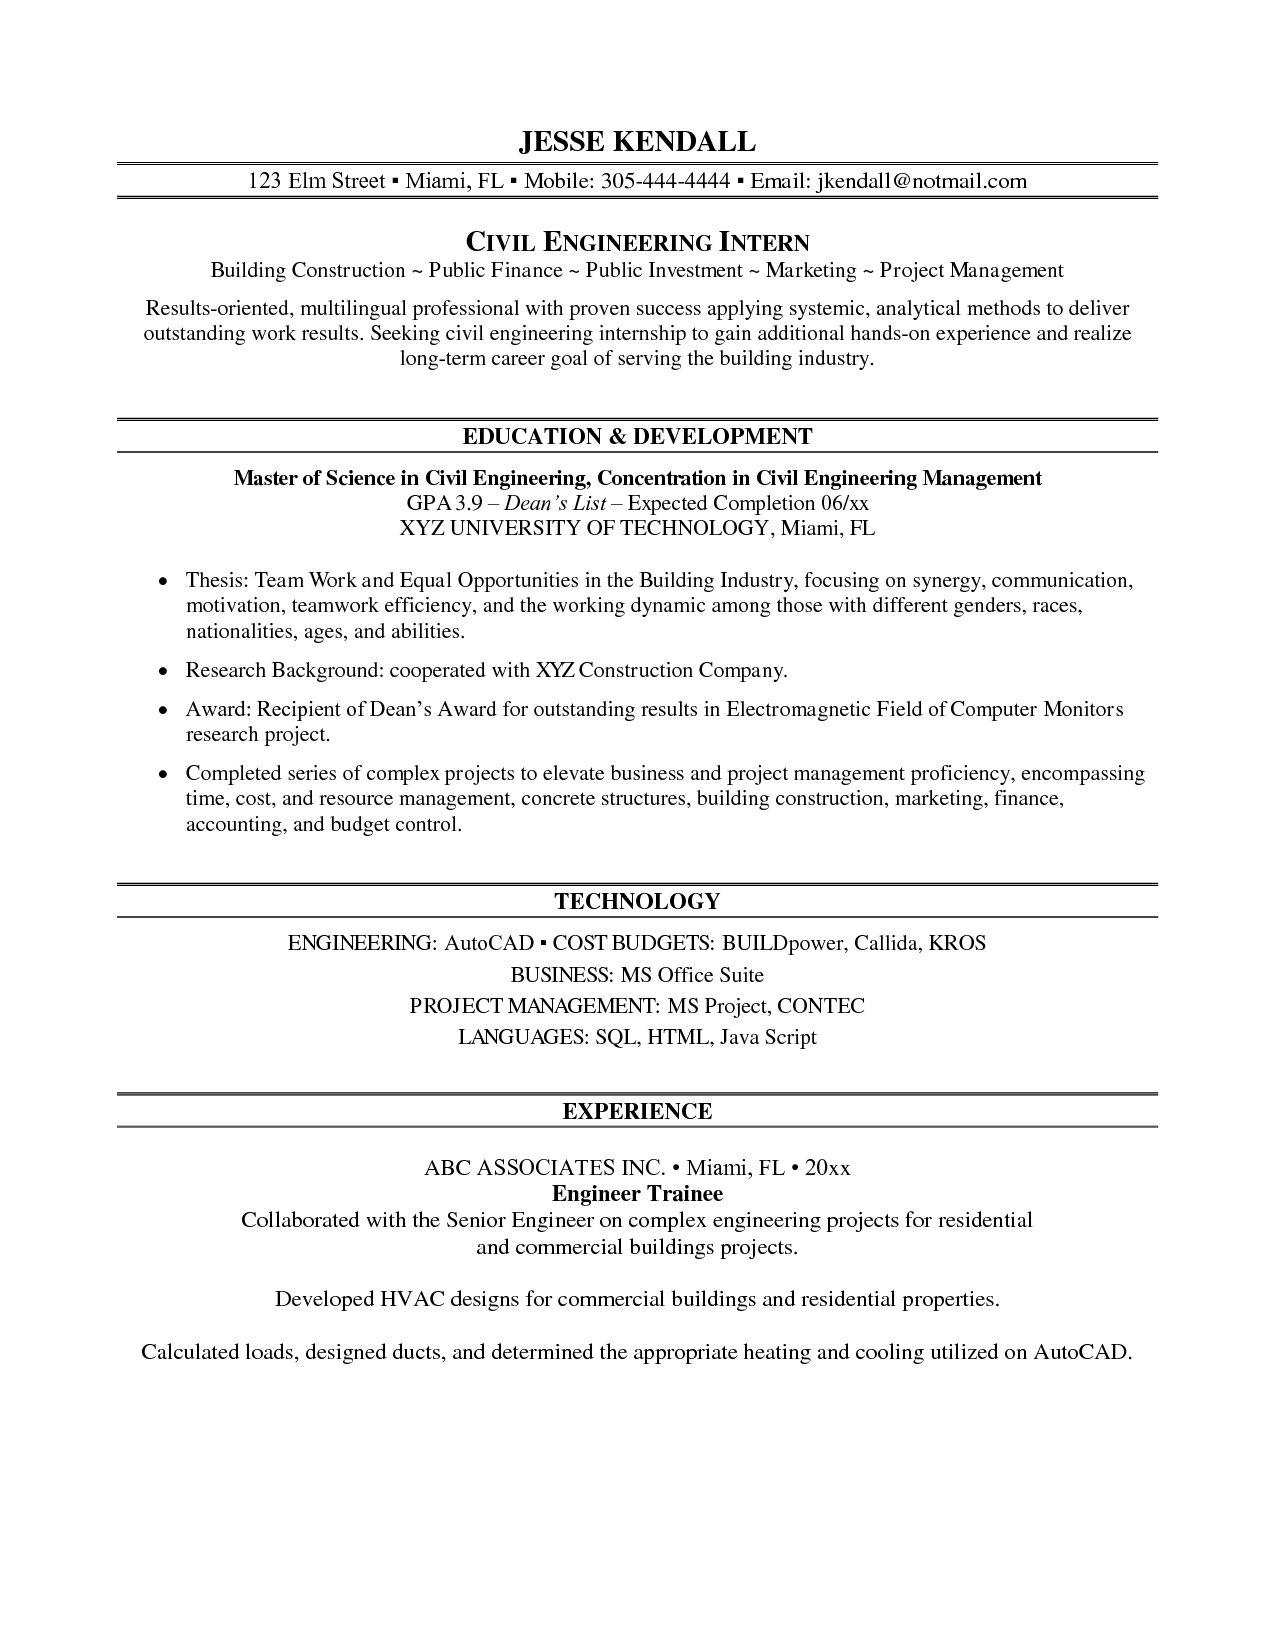 Internship Resume Template Microsoft Word Delectable Internship On Resume Best Template Collection  Httpwww